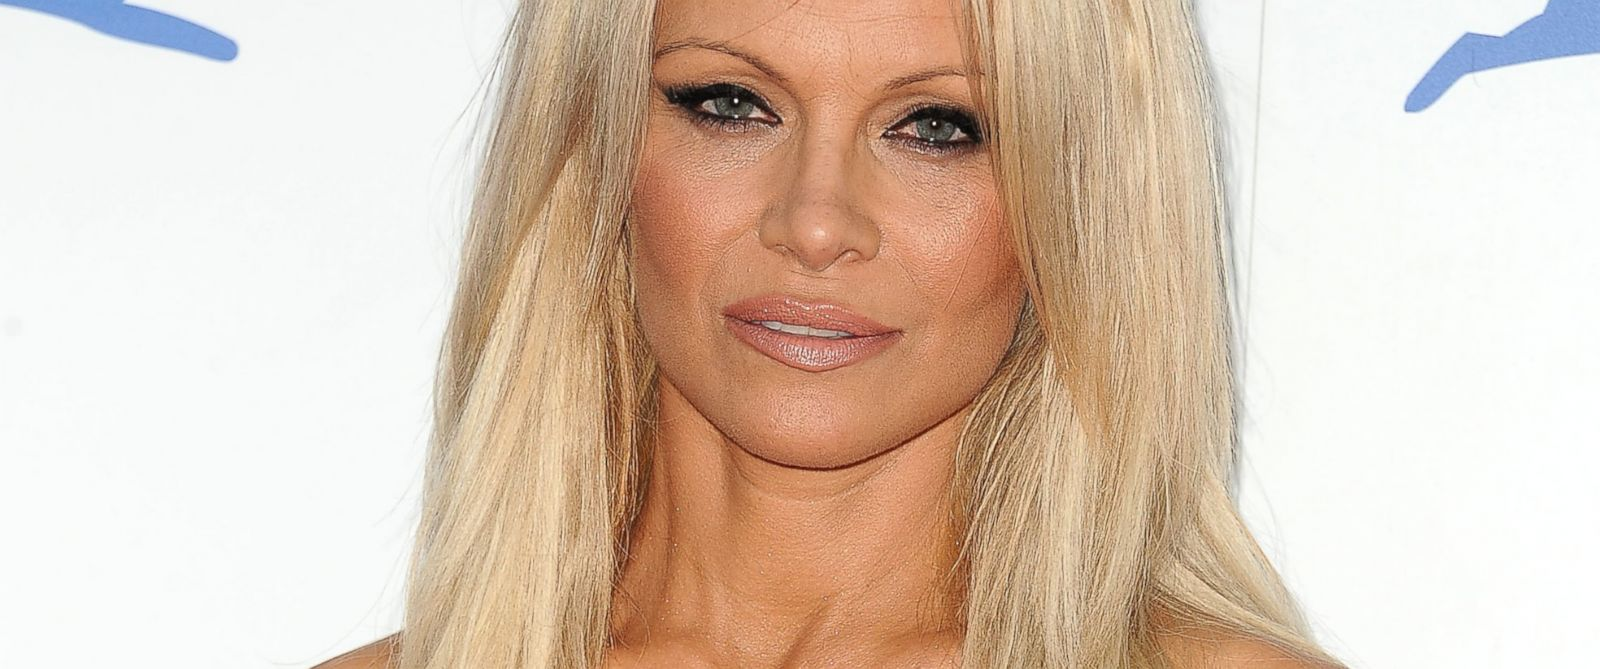 pamela anderson says she 39 s 39 cured 39 of hepatitis c abc news. Black Bedroom Furniture Sets. Home Design Ideas